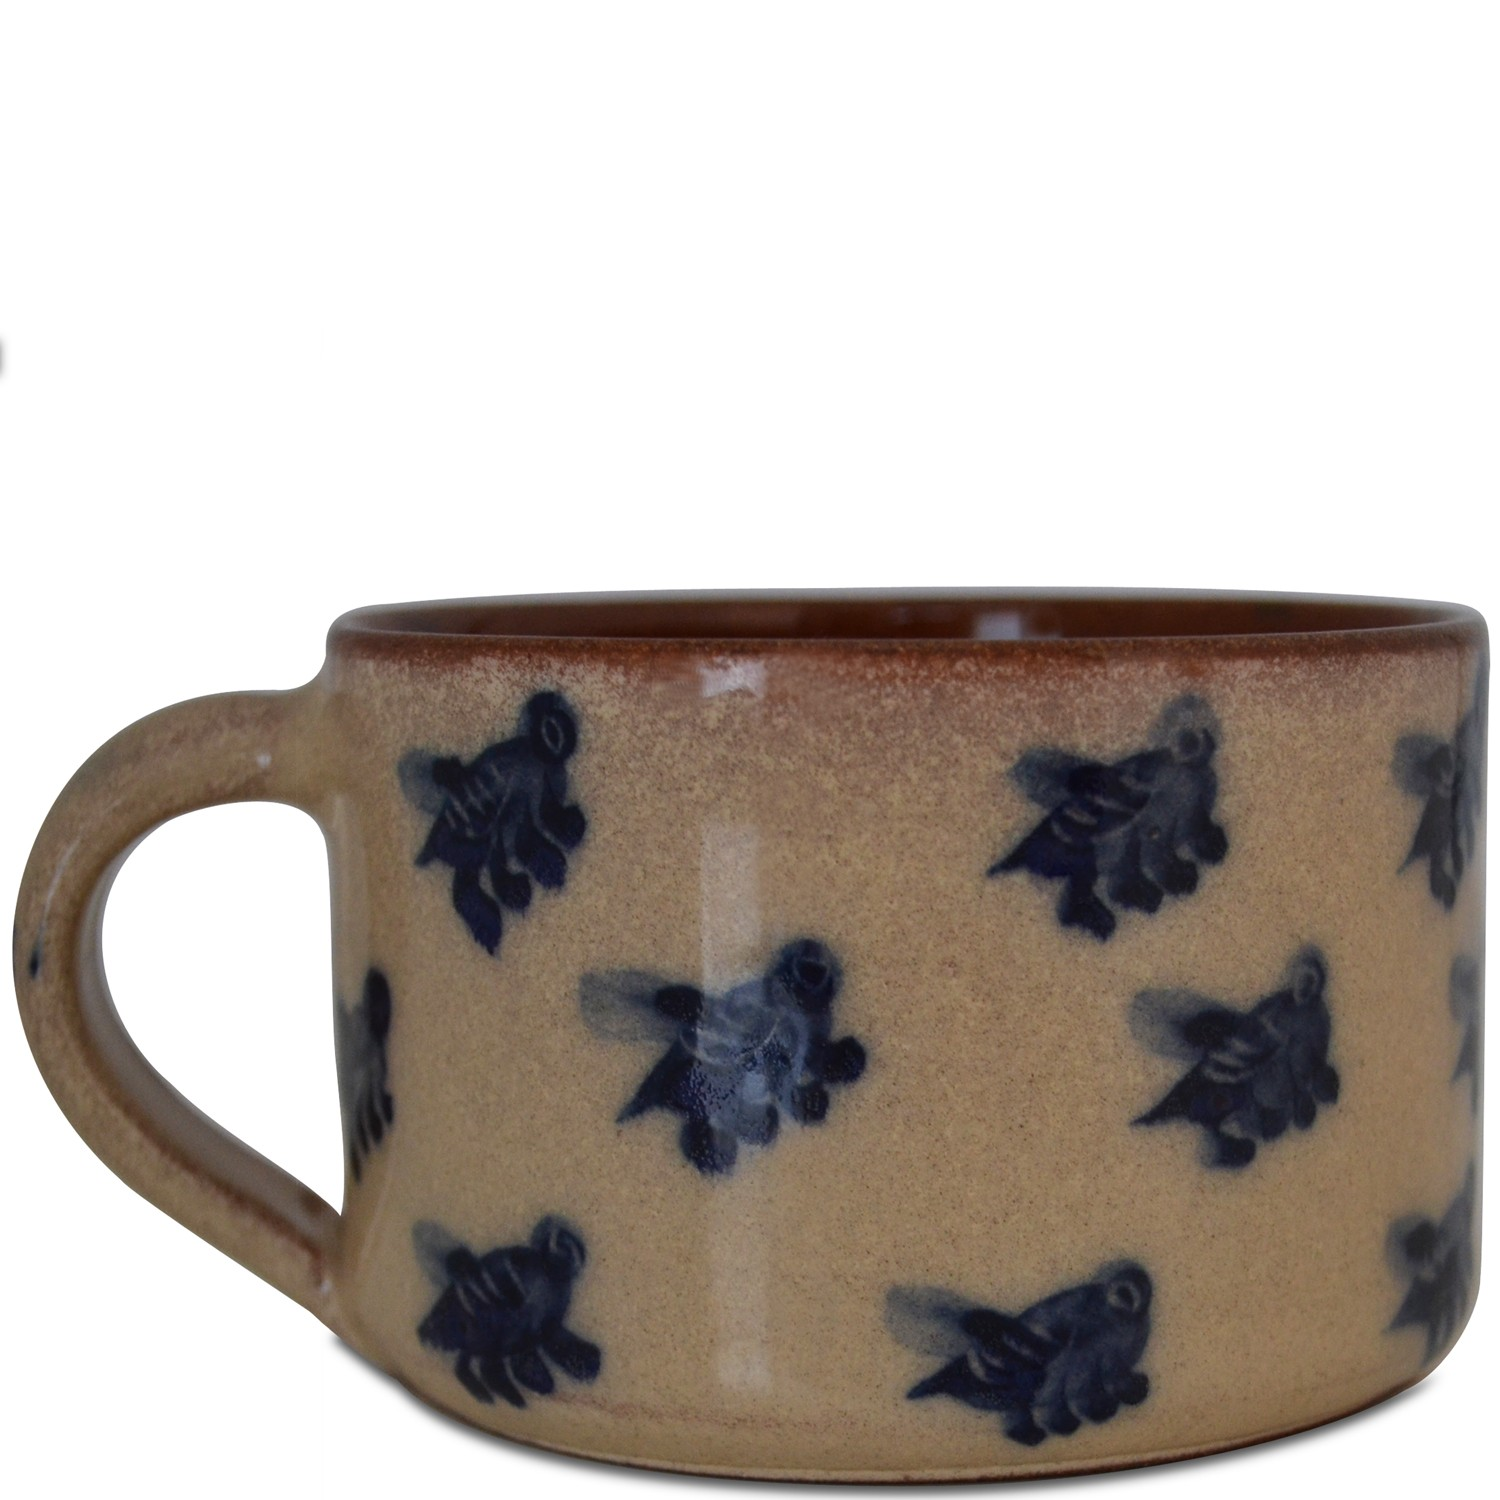 Handmade pottery mugs for sale - Hand painted Bees-1